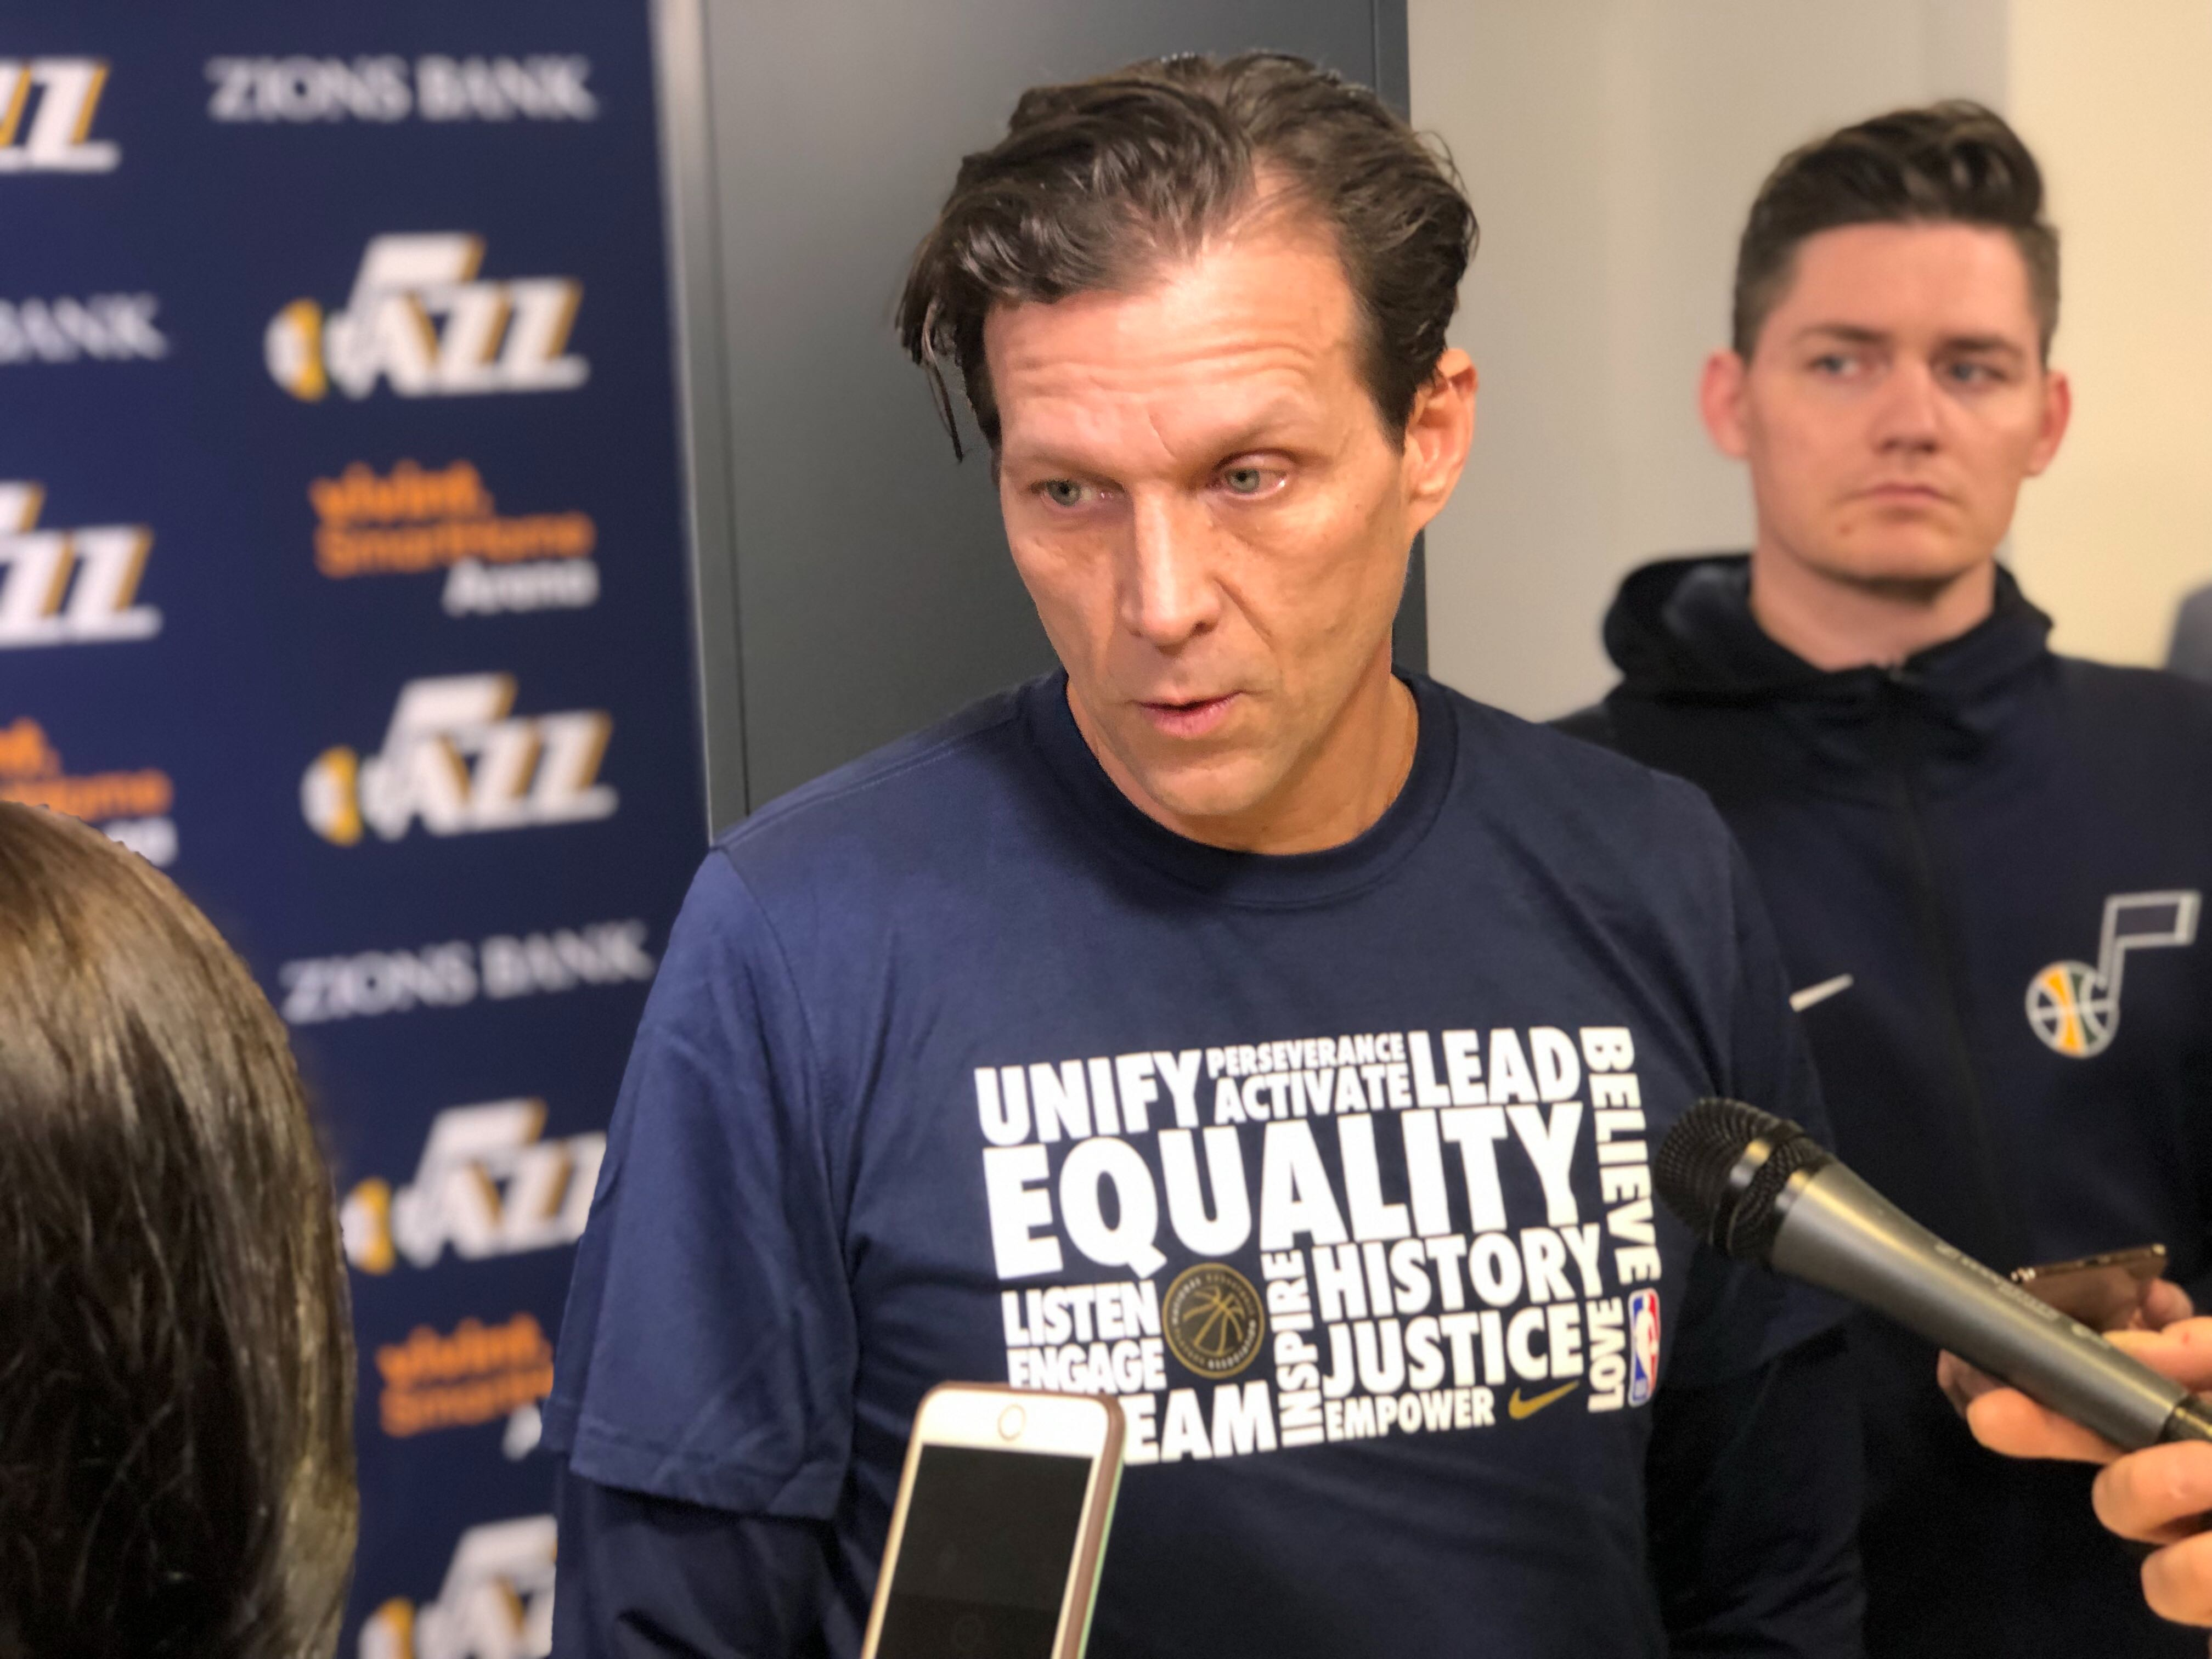 Utah Jazz coach Quin Snyder joins the leaguewide celebration of Black History Month by wearing the Nike Black History Month t-shirt ahead of the Atlanta Hawks game on Friday, Feb. 1, 2019.